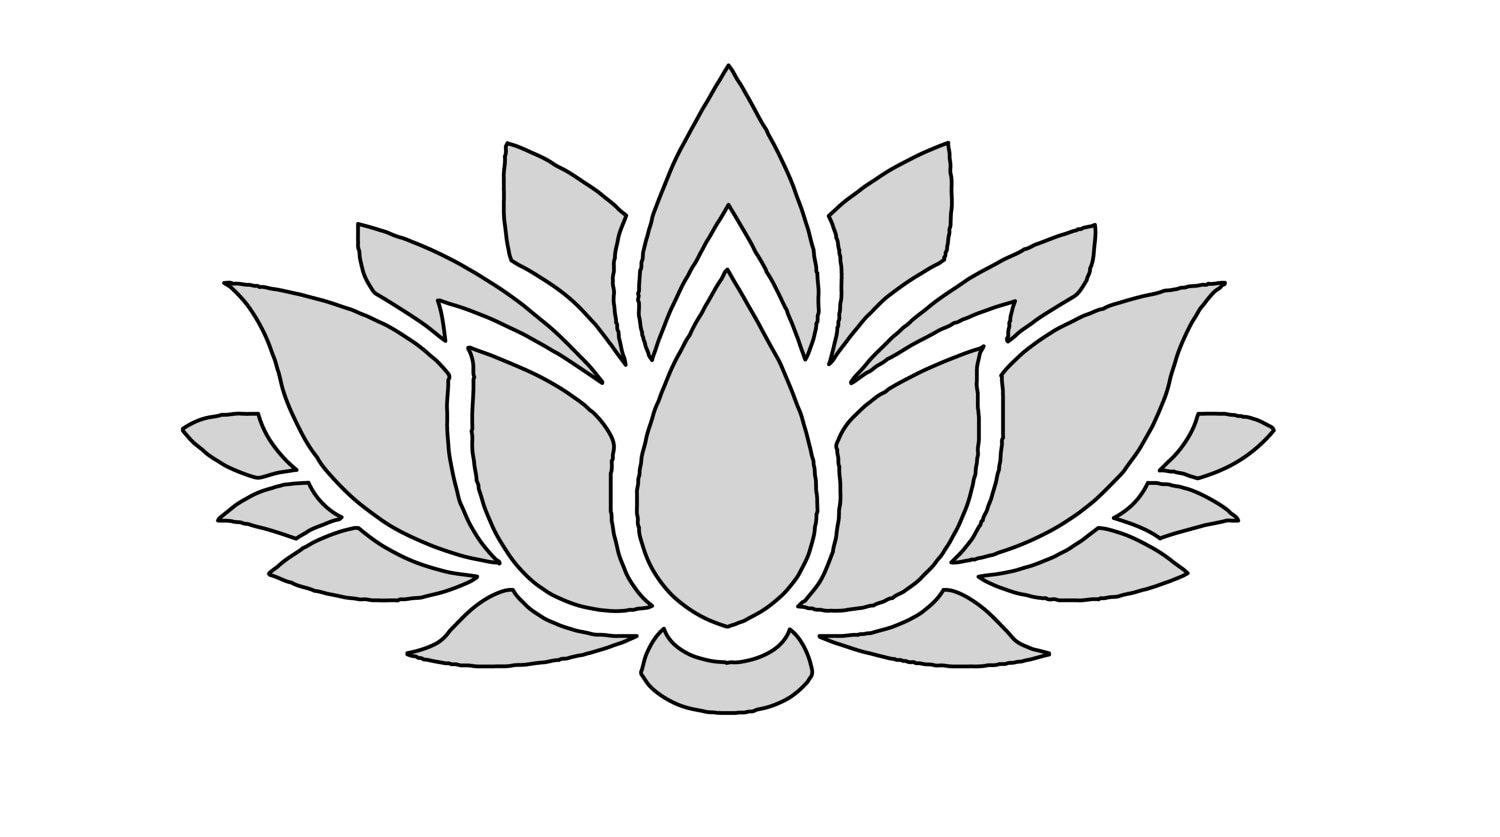 8 W String Art Lotus Flower Pattern Template